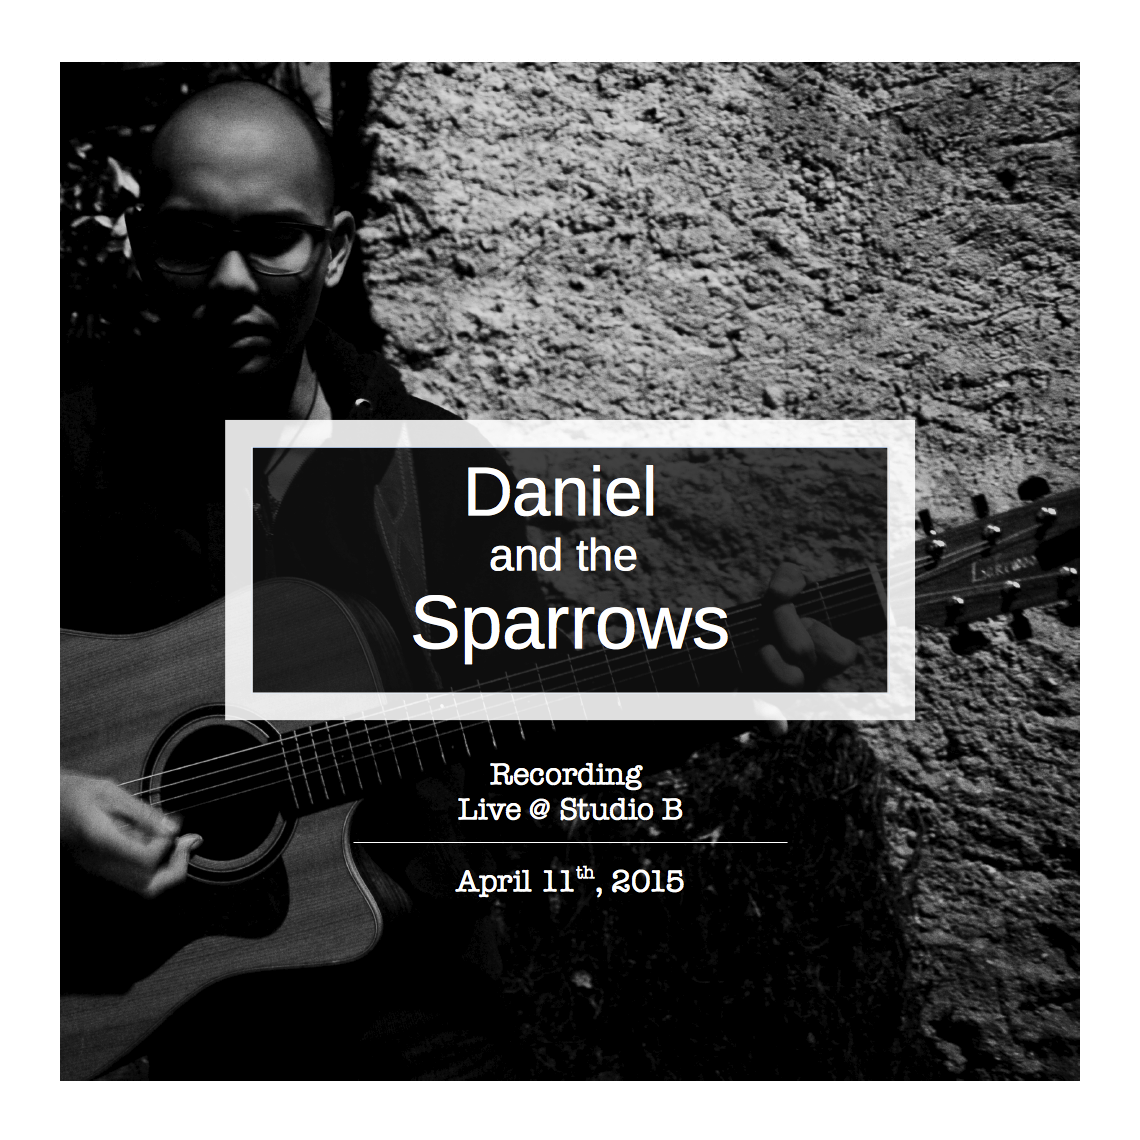 DAniel and the Sparrows2